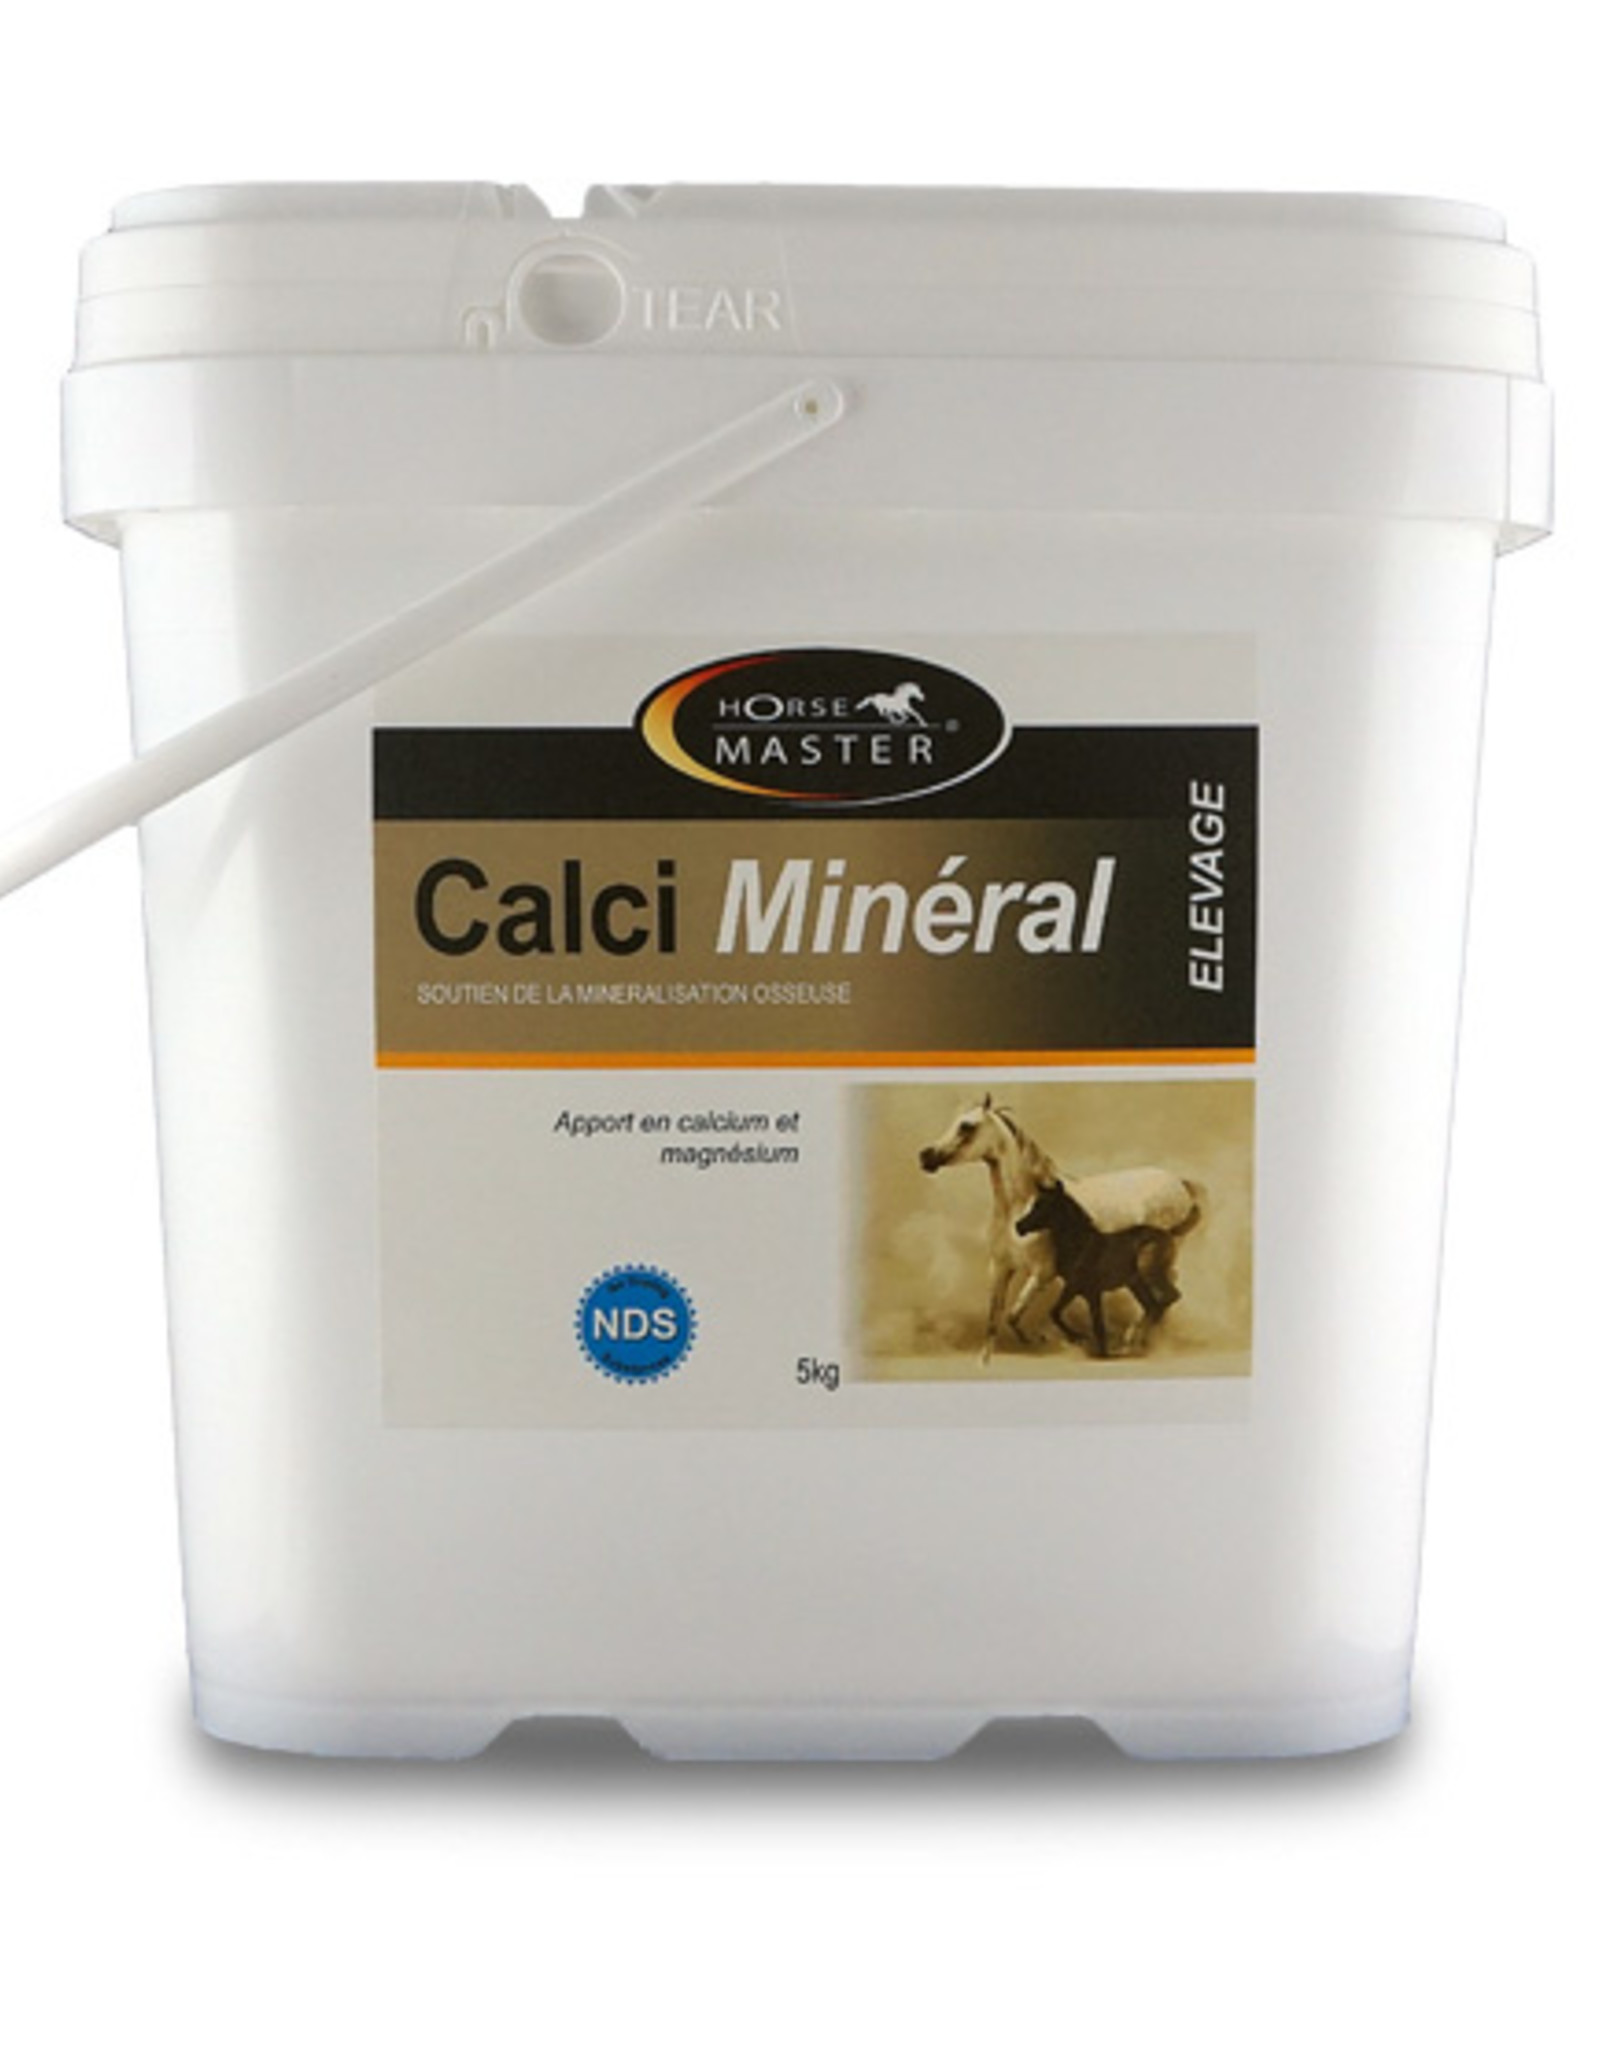 Horse Master Calci Mineral